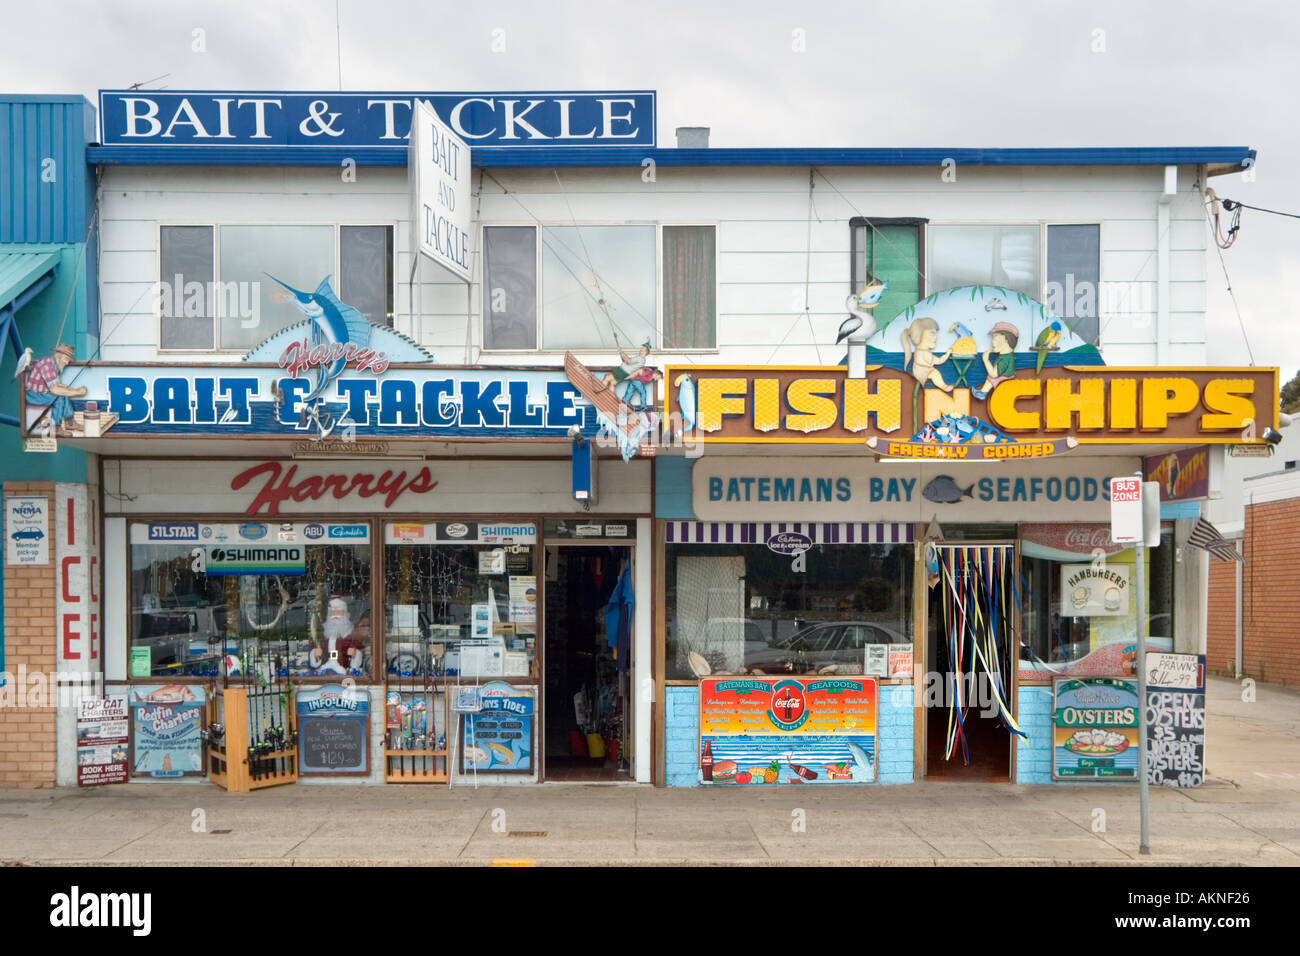 Bait and tackle and fish and chip shops batemans bay for The fish shop